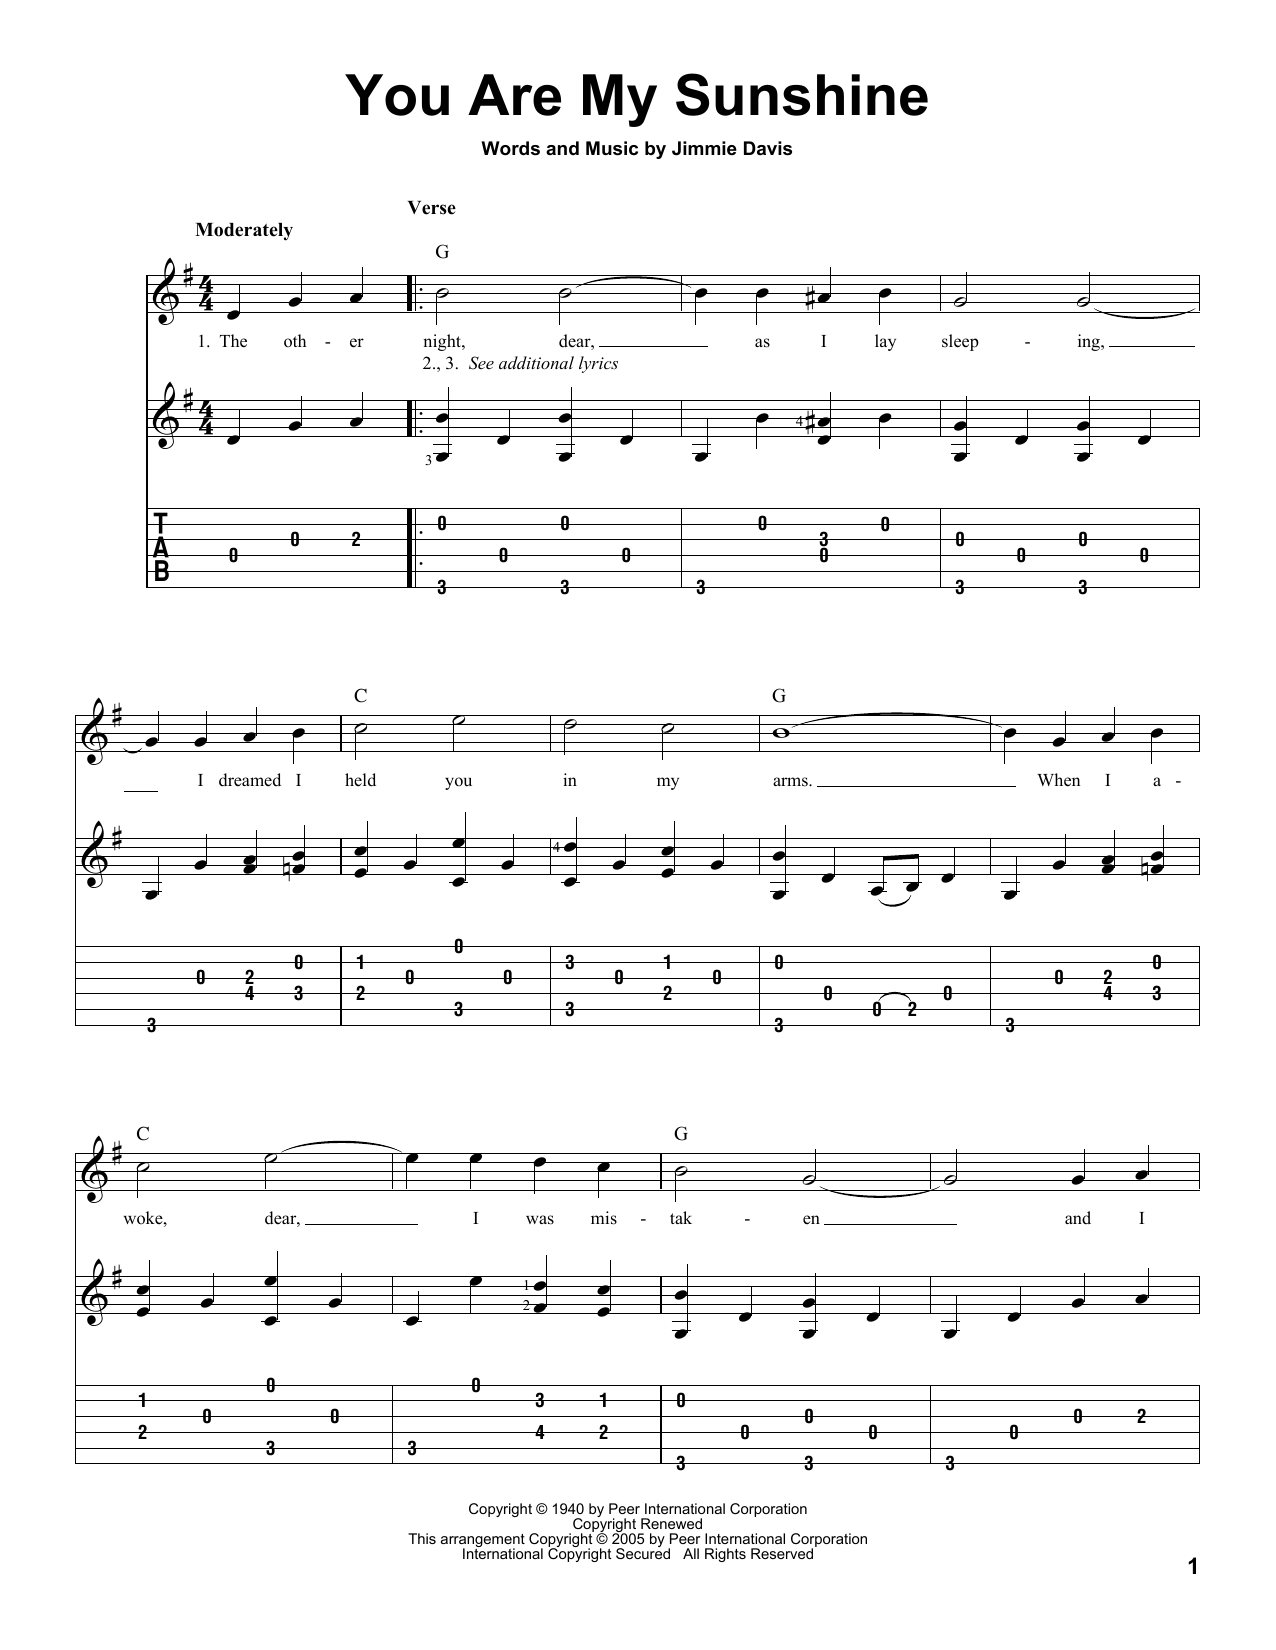 You Are My Sunshine Guitar Tab by Jimmie Davis (Guitar Tab ...